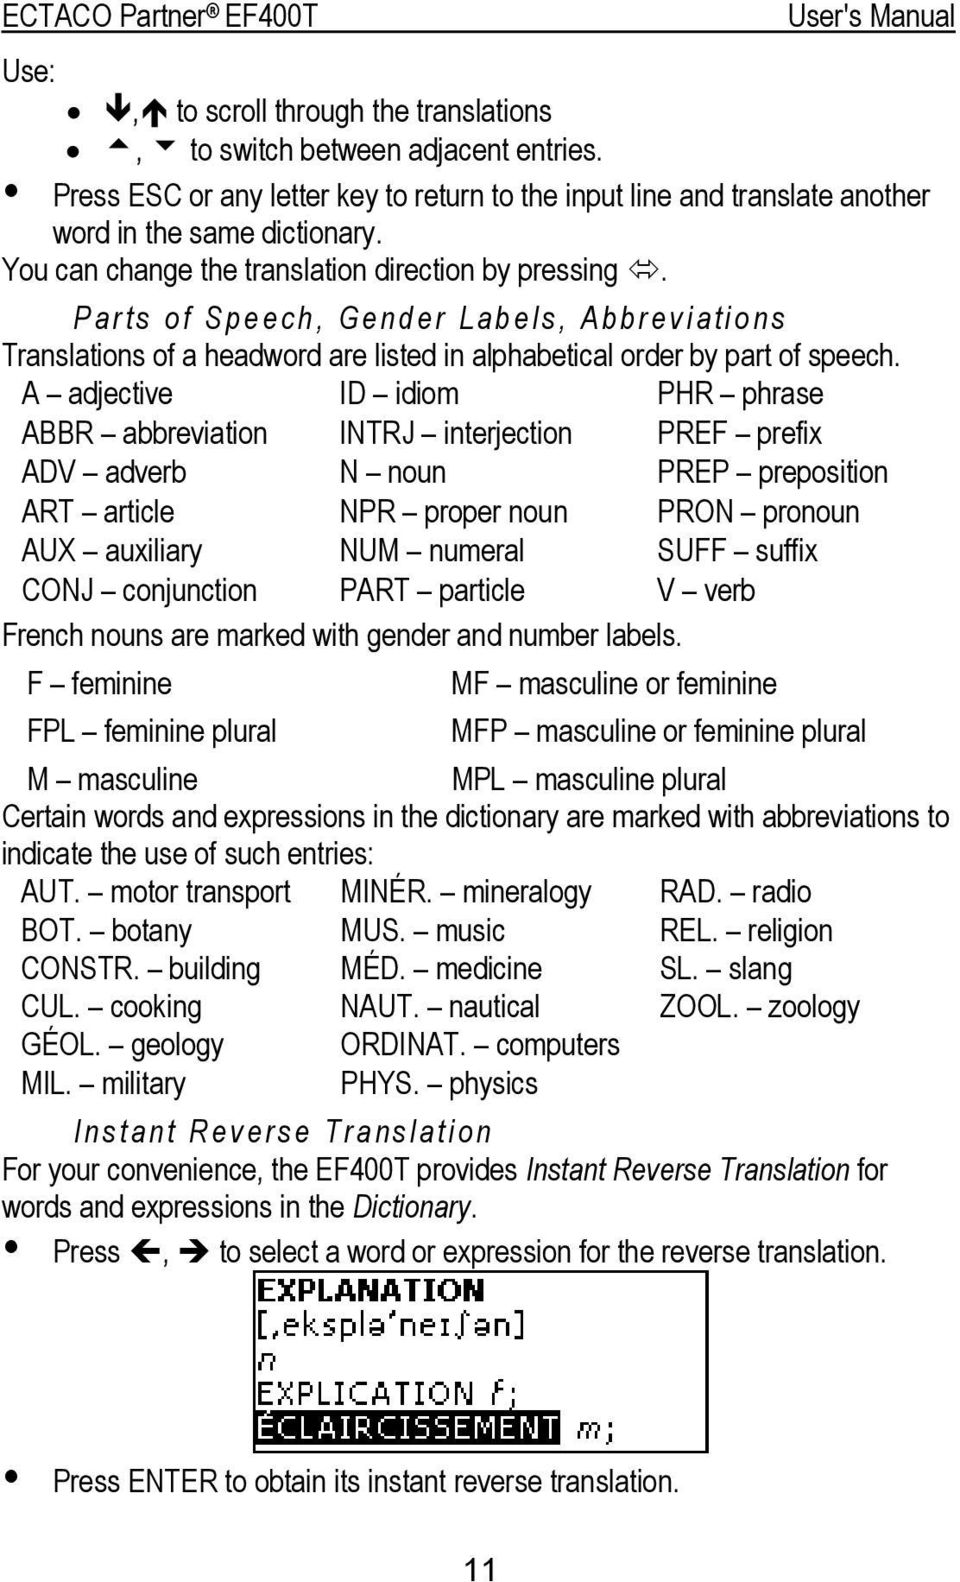 Parts of Speech, Gender Labels, Abbreviations Translations of a headword are listed in alphabetical order by part of speech.